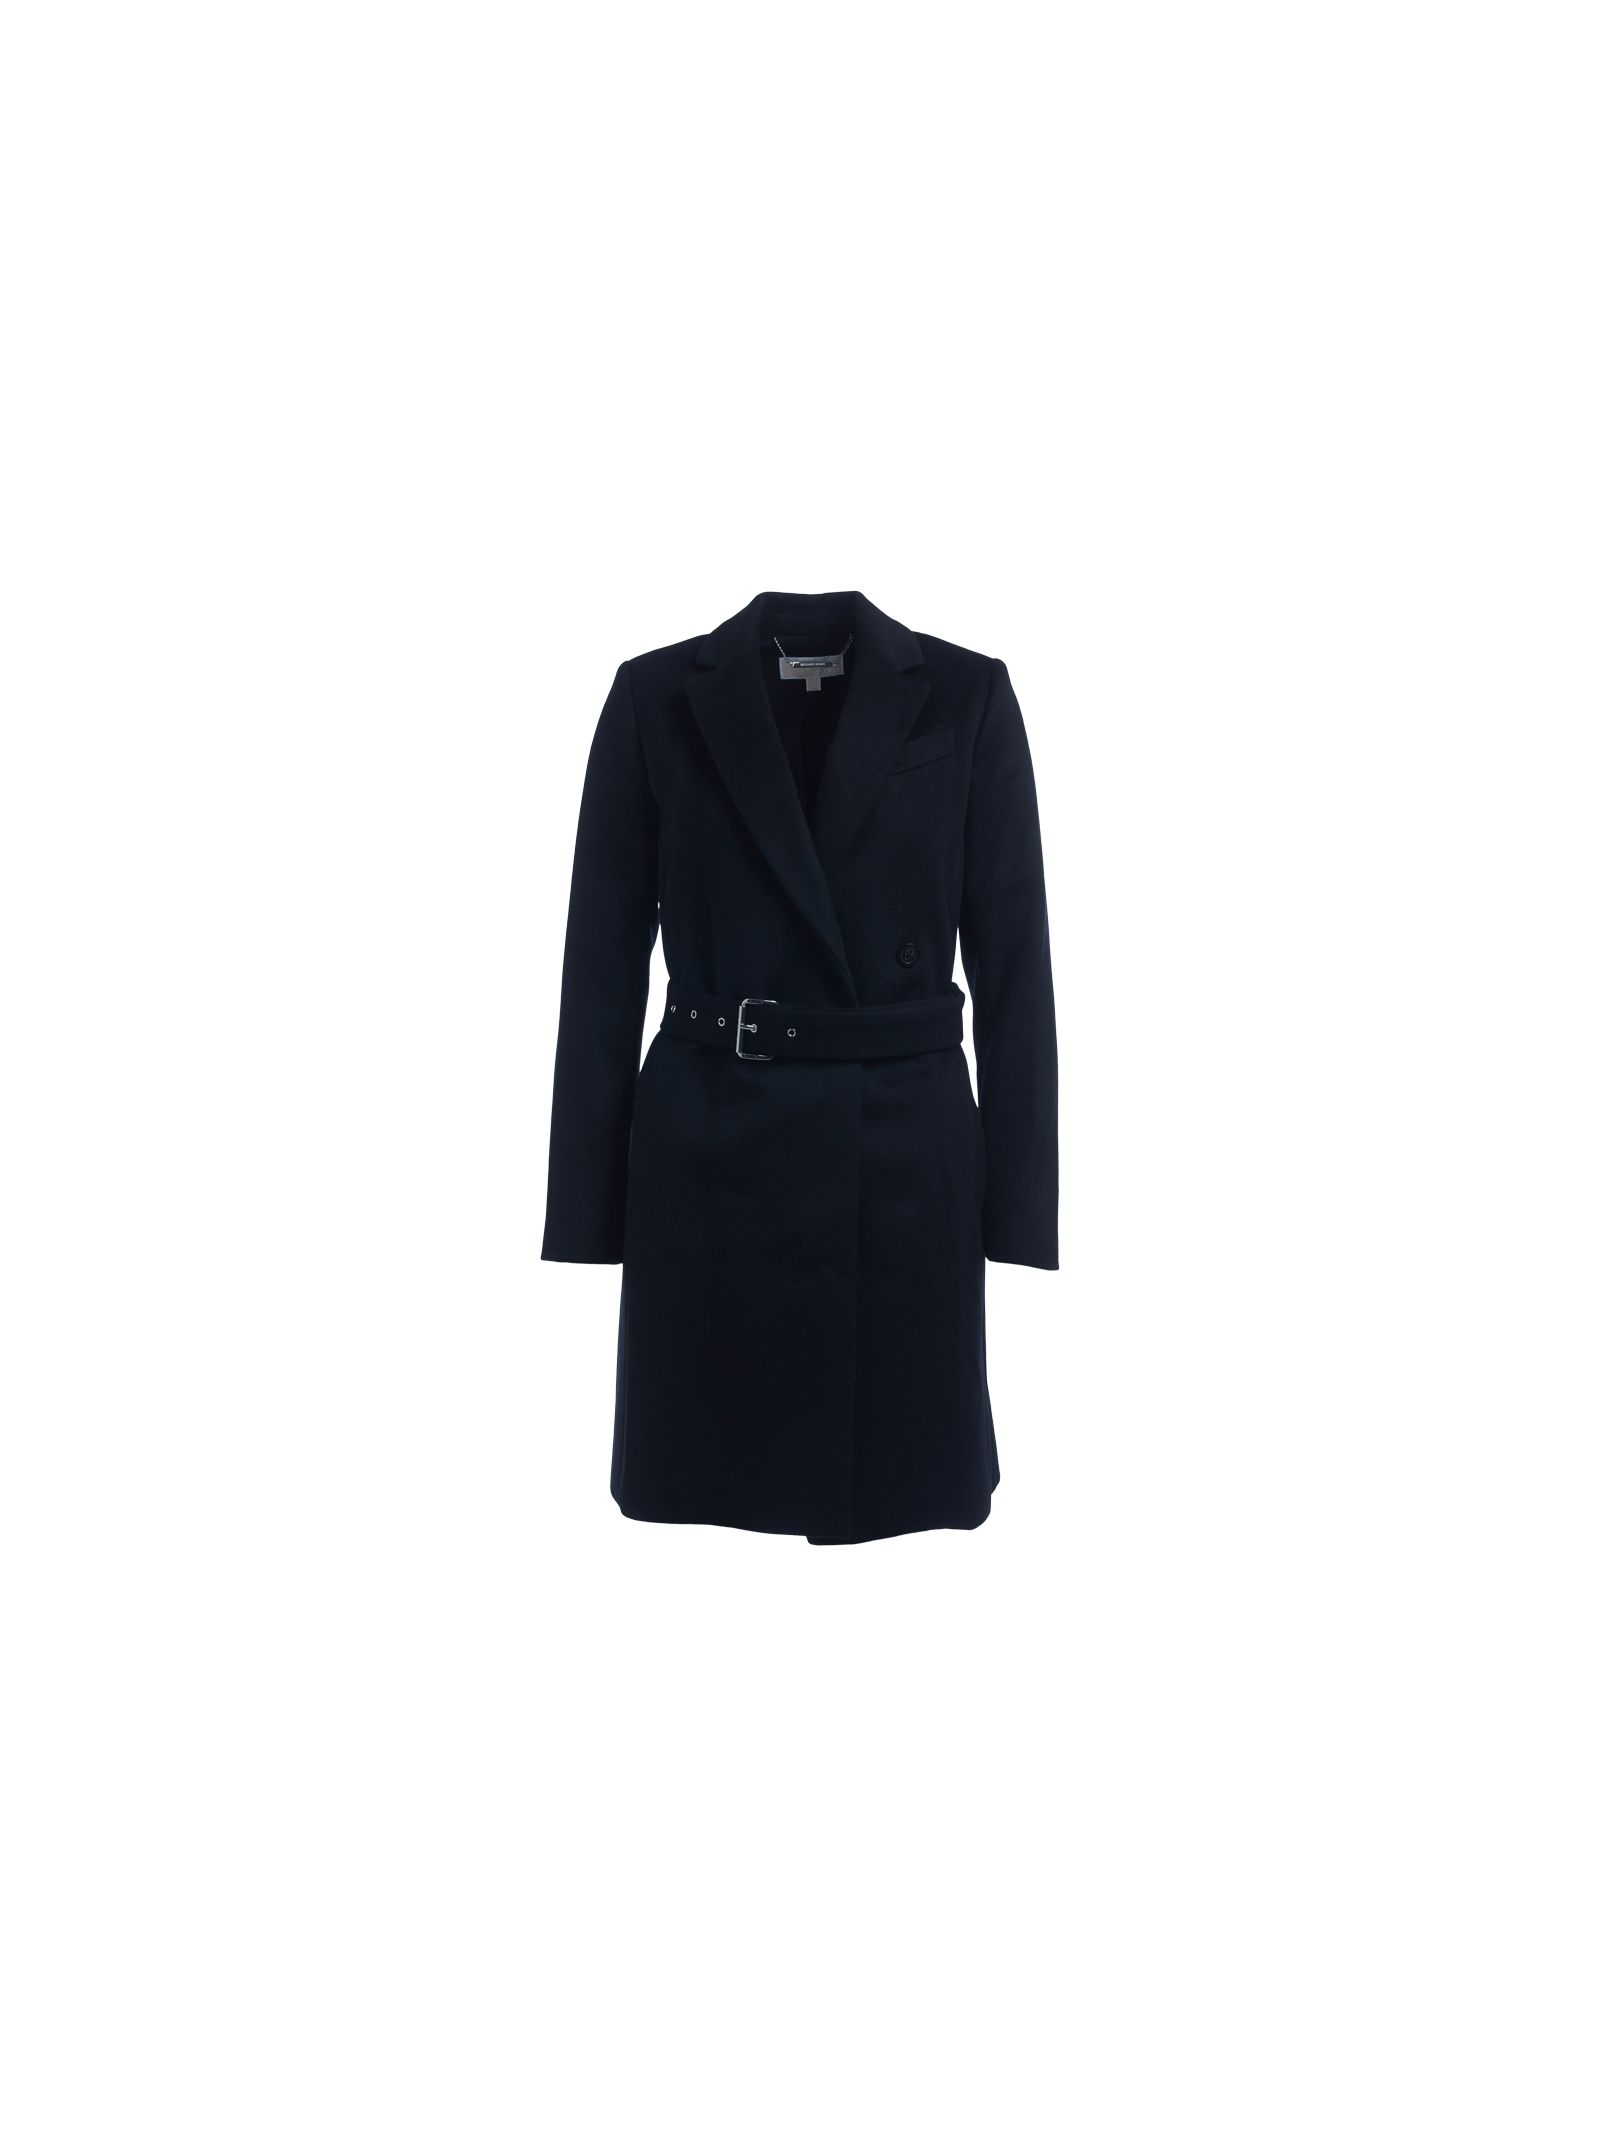 michael kors female  michael kors black trench